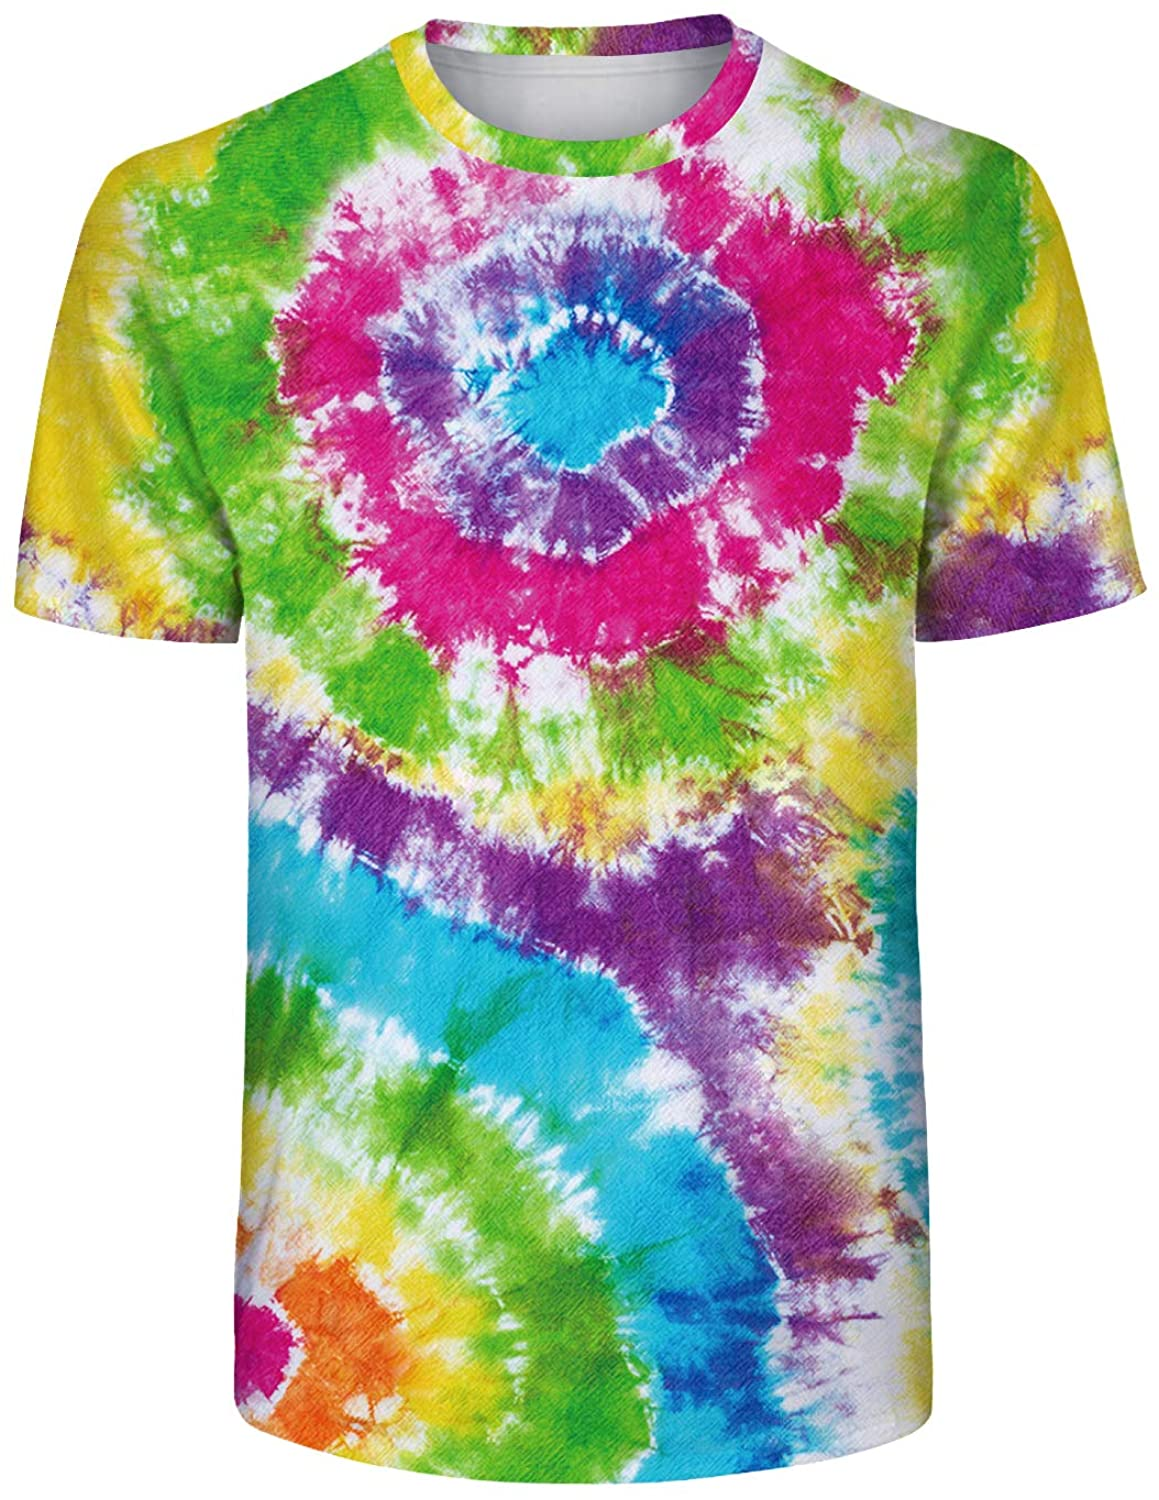 TENMET Unisex Colorful Tie Dye Shirts in Adult Sizes M-XXL Tie-Dyed Cool Tee for Men and Women